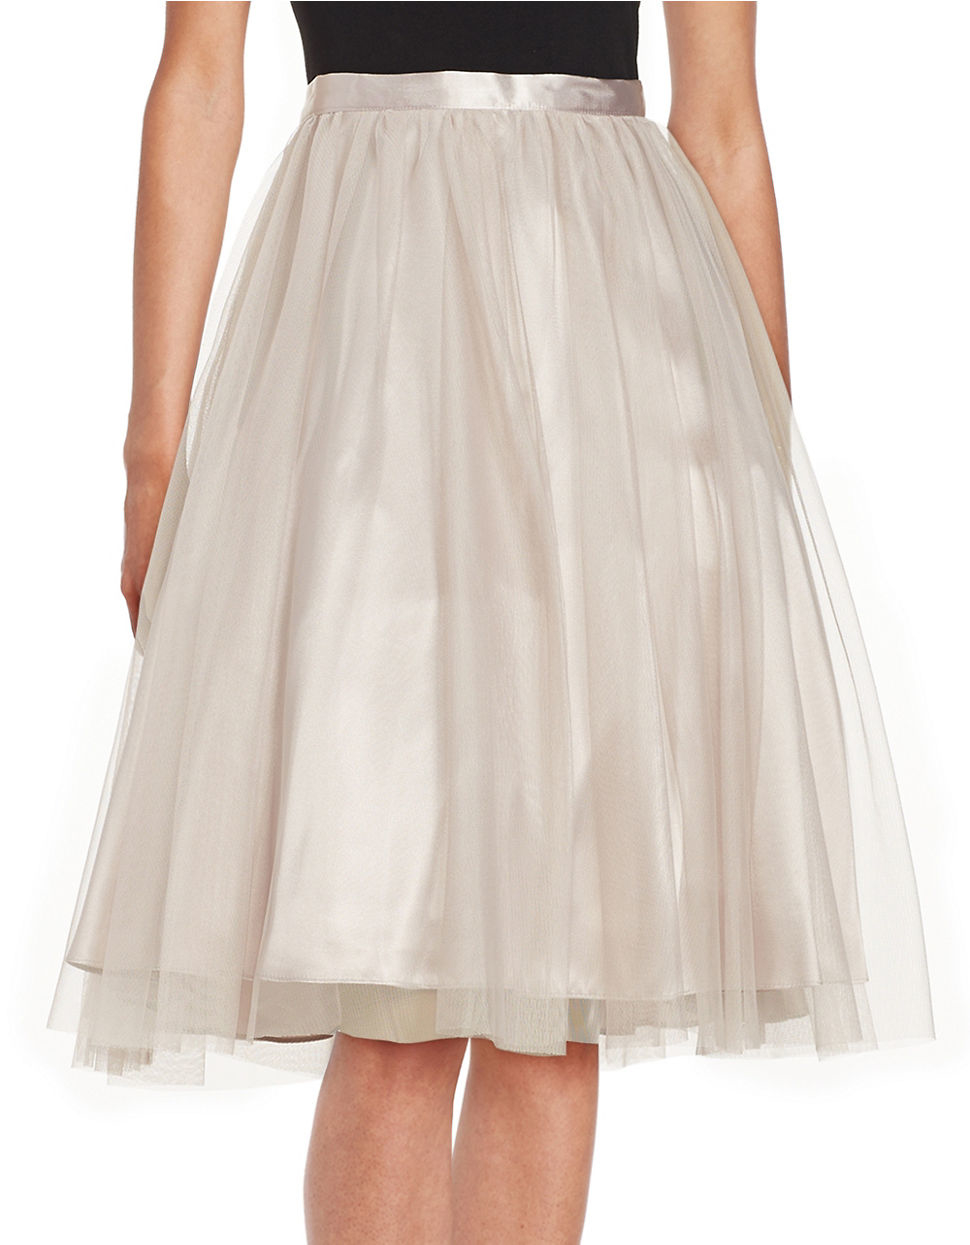 Alexis Dayla A-line Skirt. - available in White. See Details.